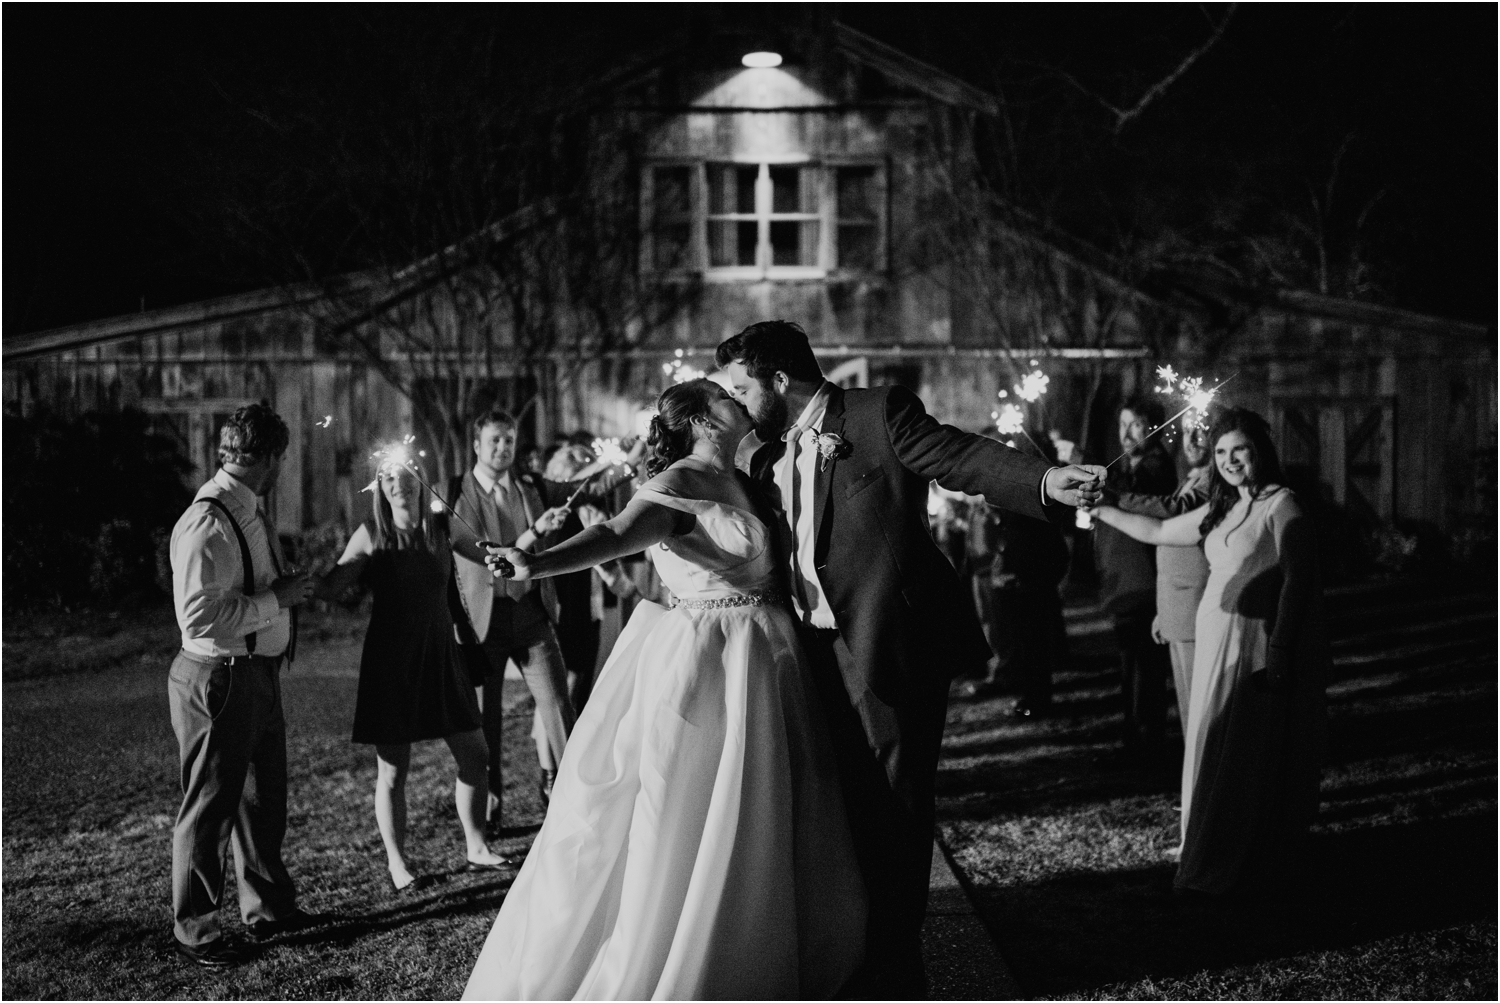 sparkler exit at reception memphis tennessee wedding heartwood hall venue black and white